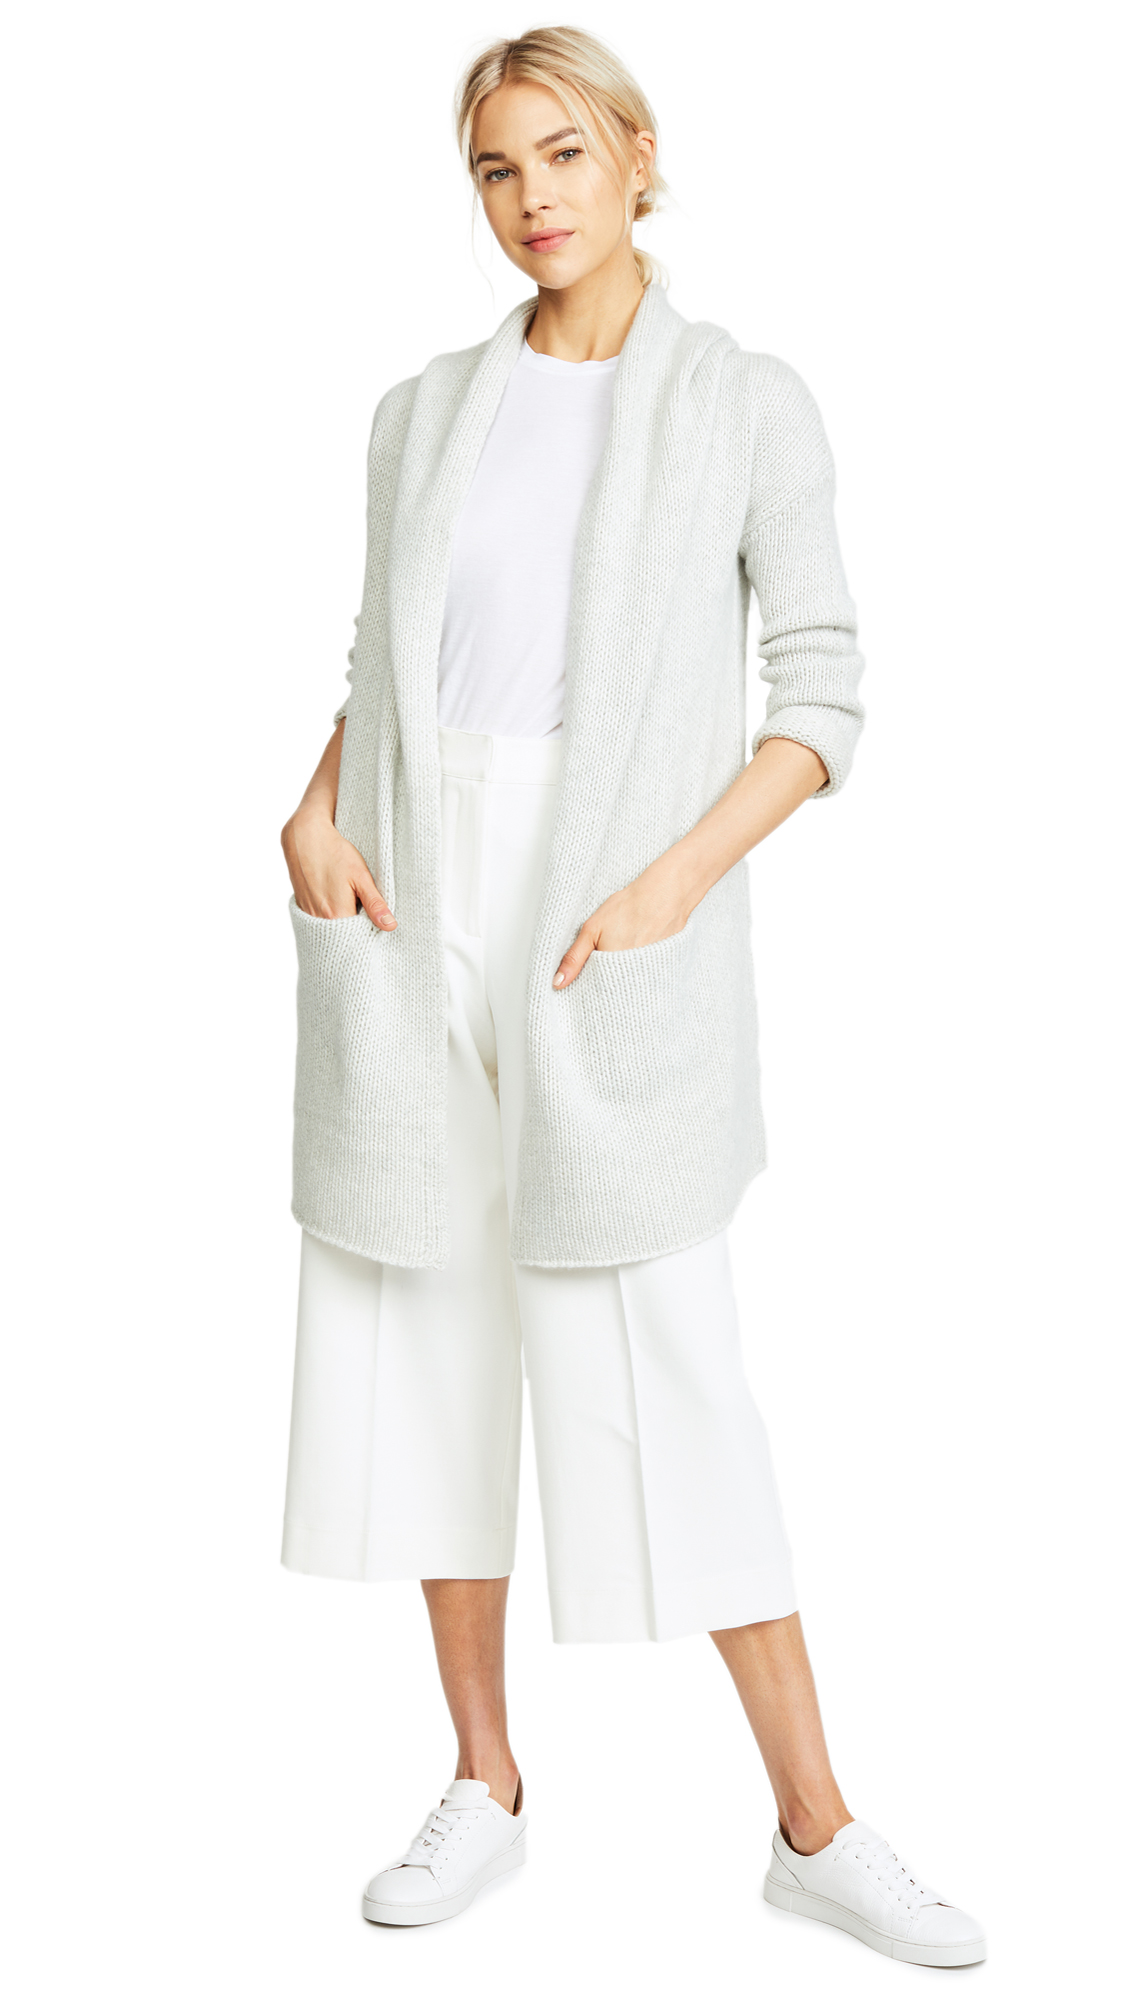 SABLYN COLLETTE CASHMERE CARDIGAN